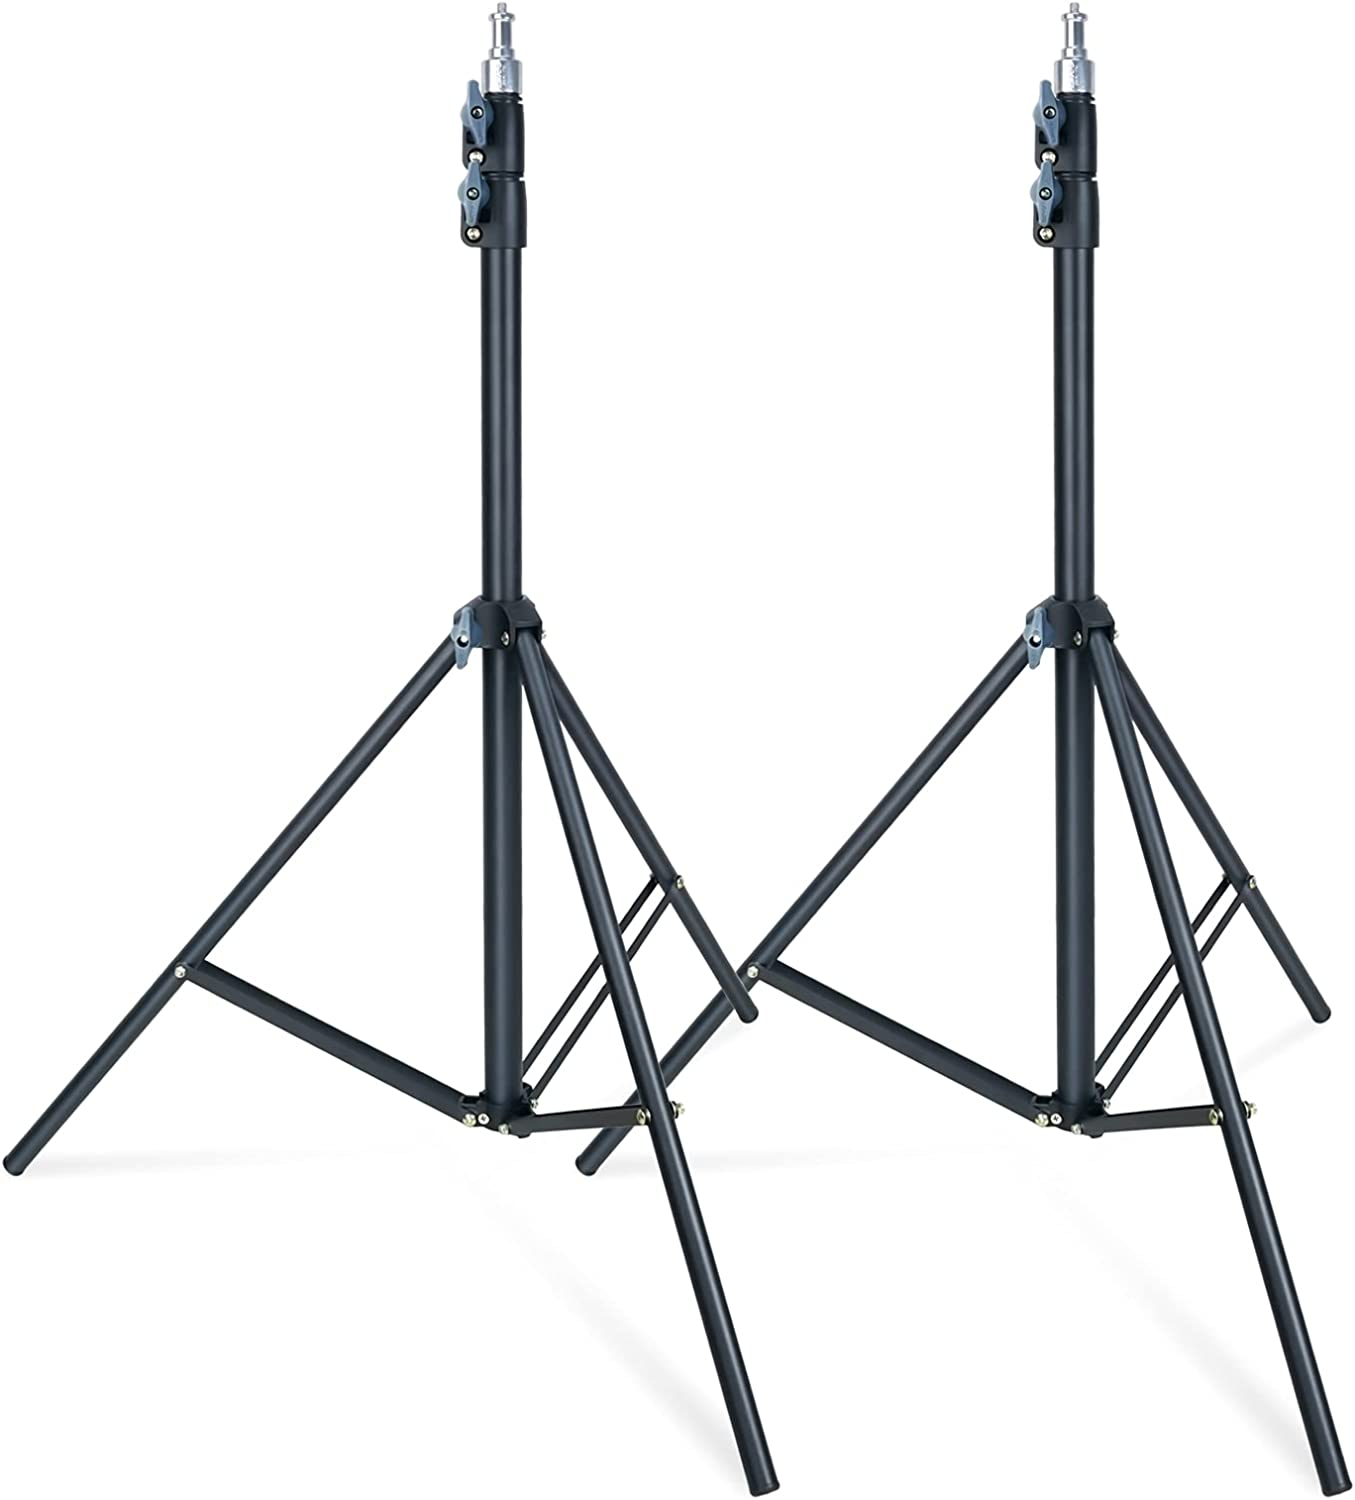 LINCO Lincostore Zenith 7 feet 225cm Studio National uniform free shipping We OFFer at cheap prices S Stands Photo Light